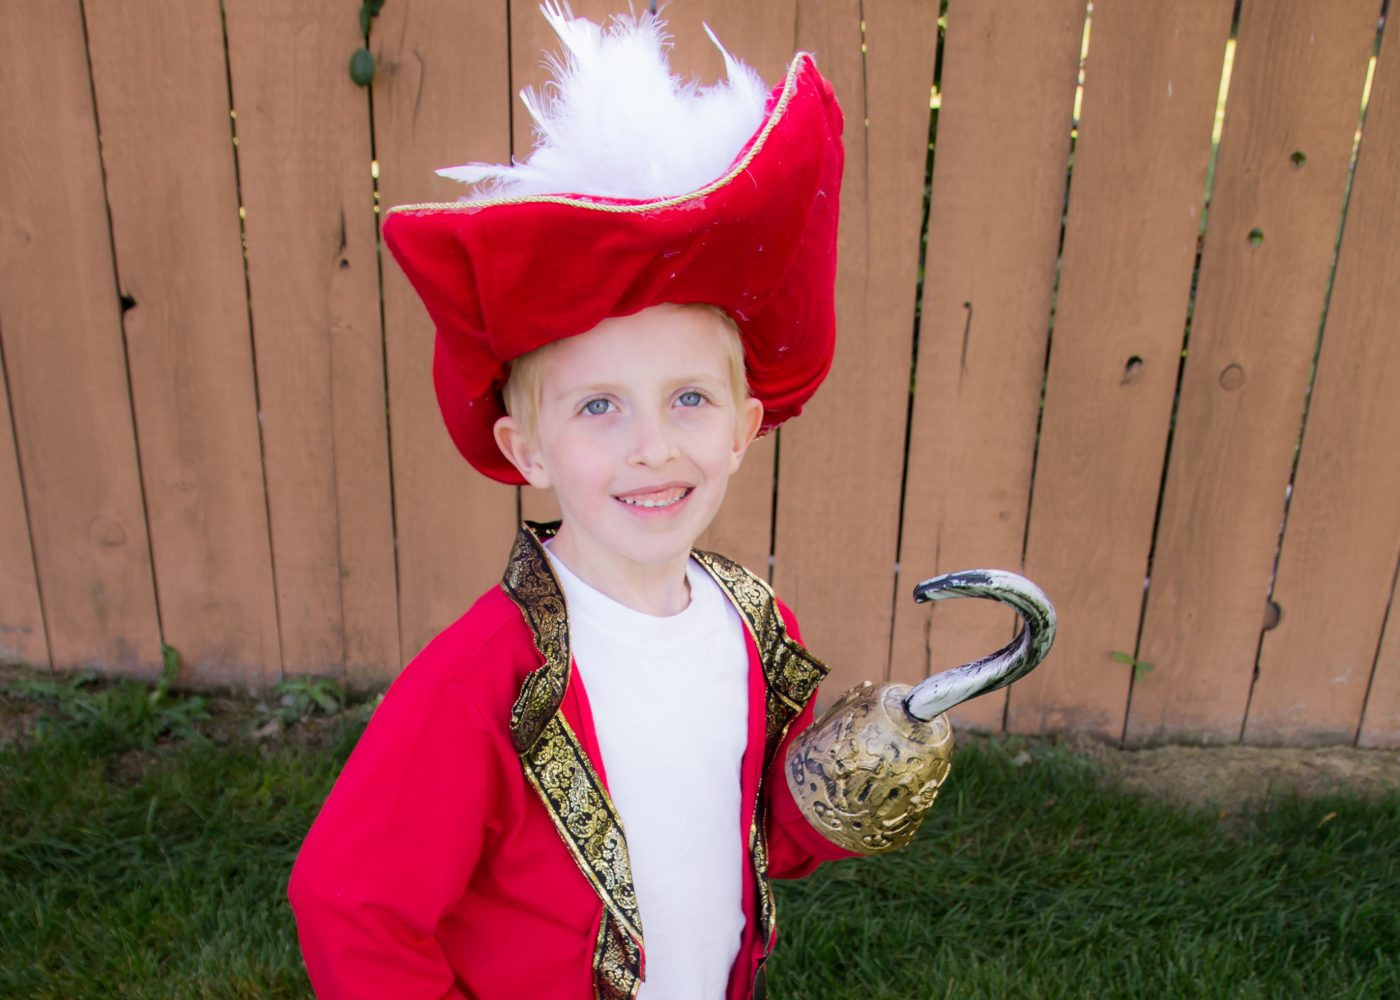 DIY Captain Hook Costumes  DIY Captain Hook Costume No Sewing Required